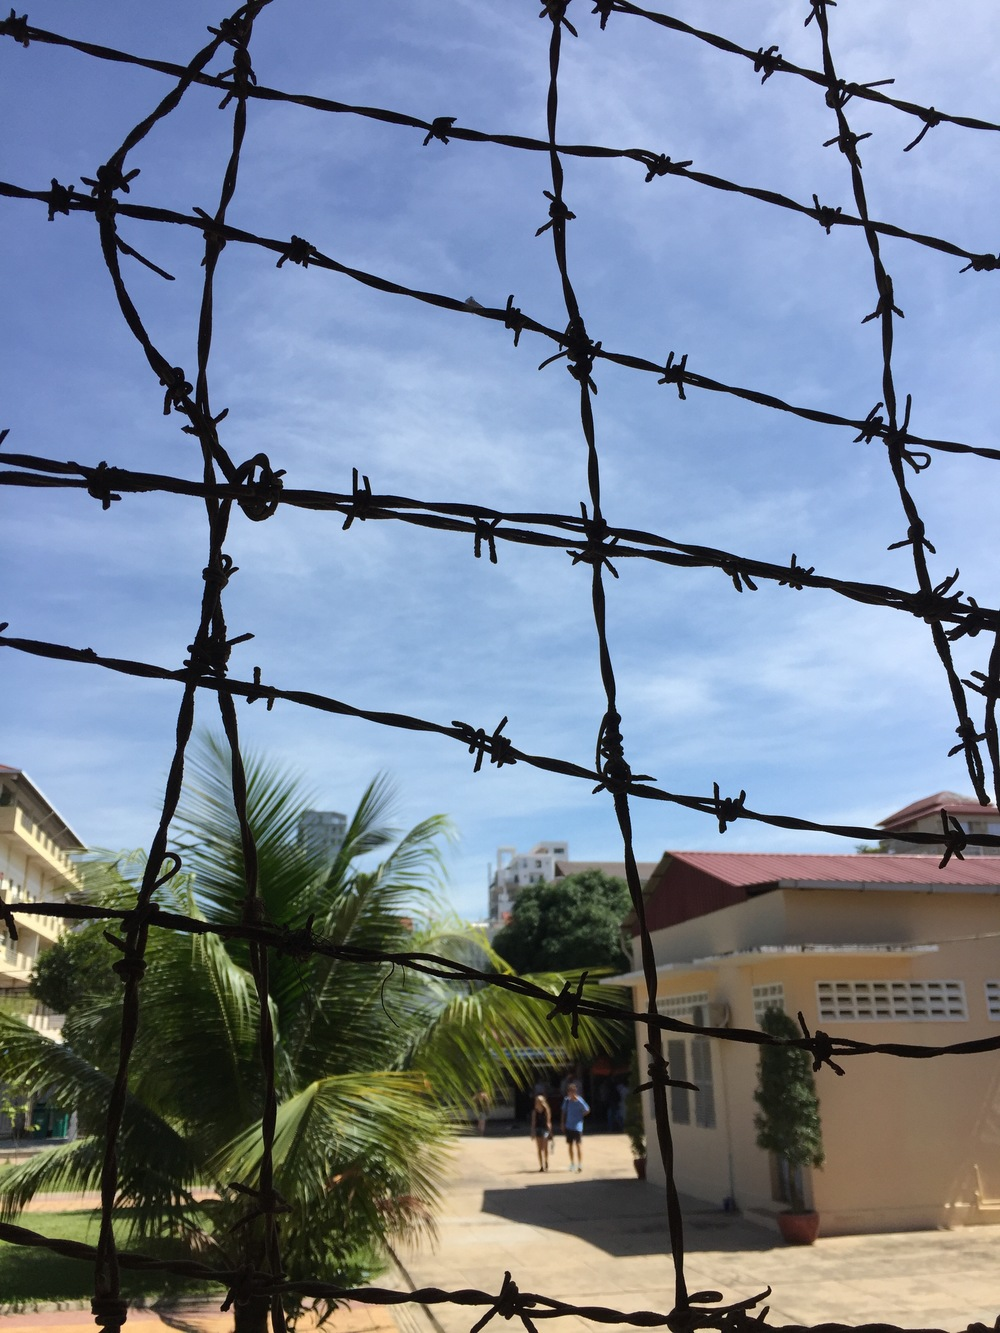 Tuol Sleng Genocide Museum, a former school that was transformed by Pol Pot and the Khmer Rouge into a torture center, where more than 20,000 people were imprisoned and tortured from 1971 to 1975.